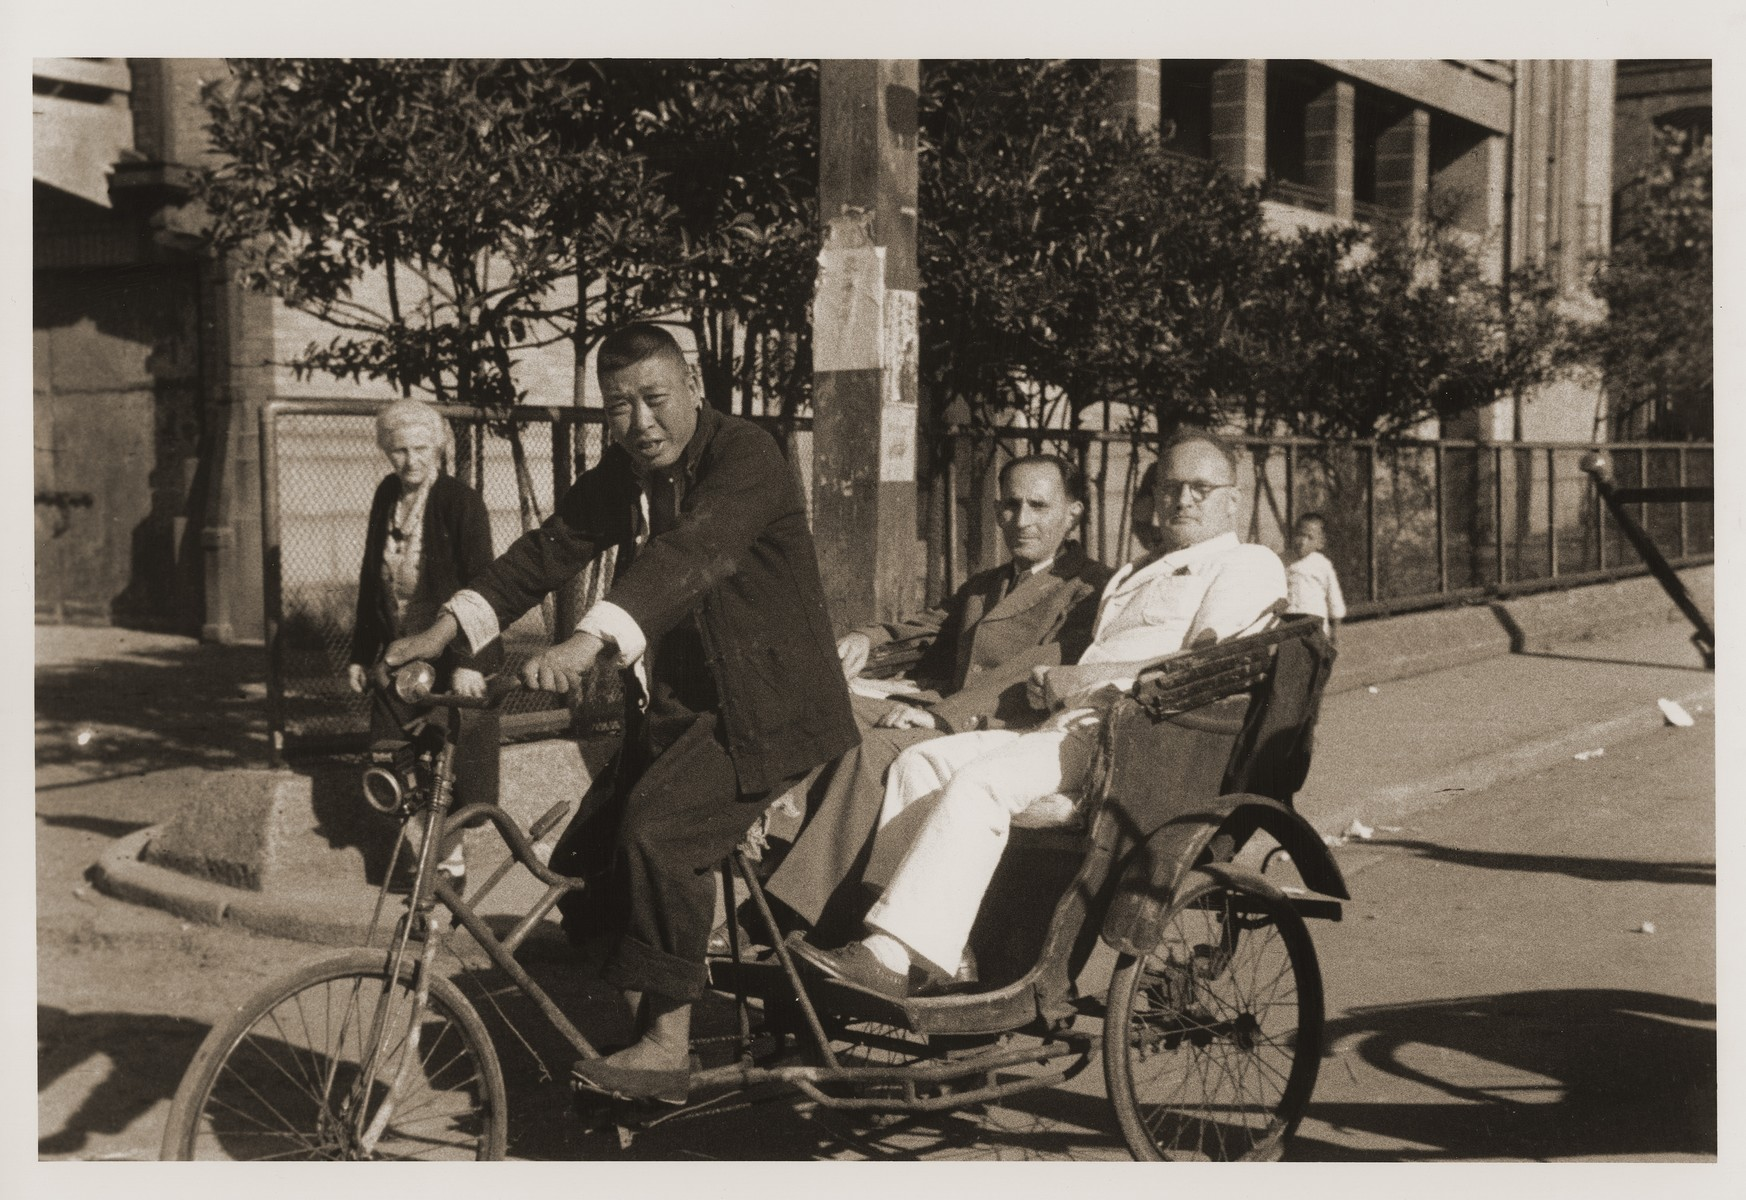 Two Jewish refugees ride in a pedicab.